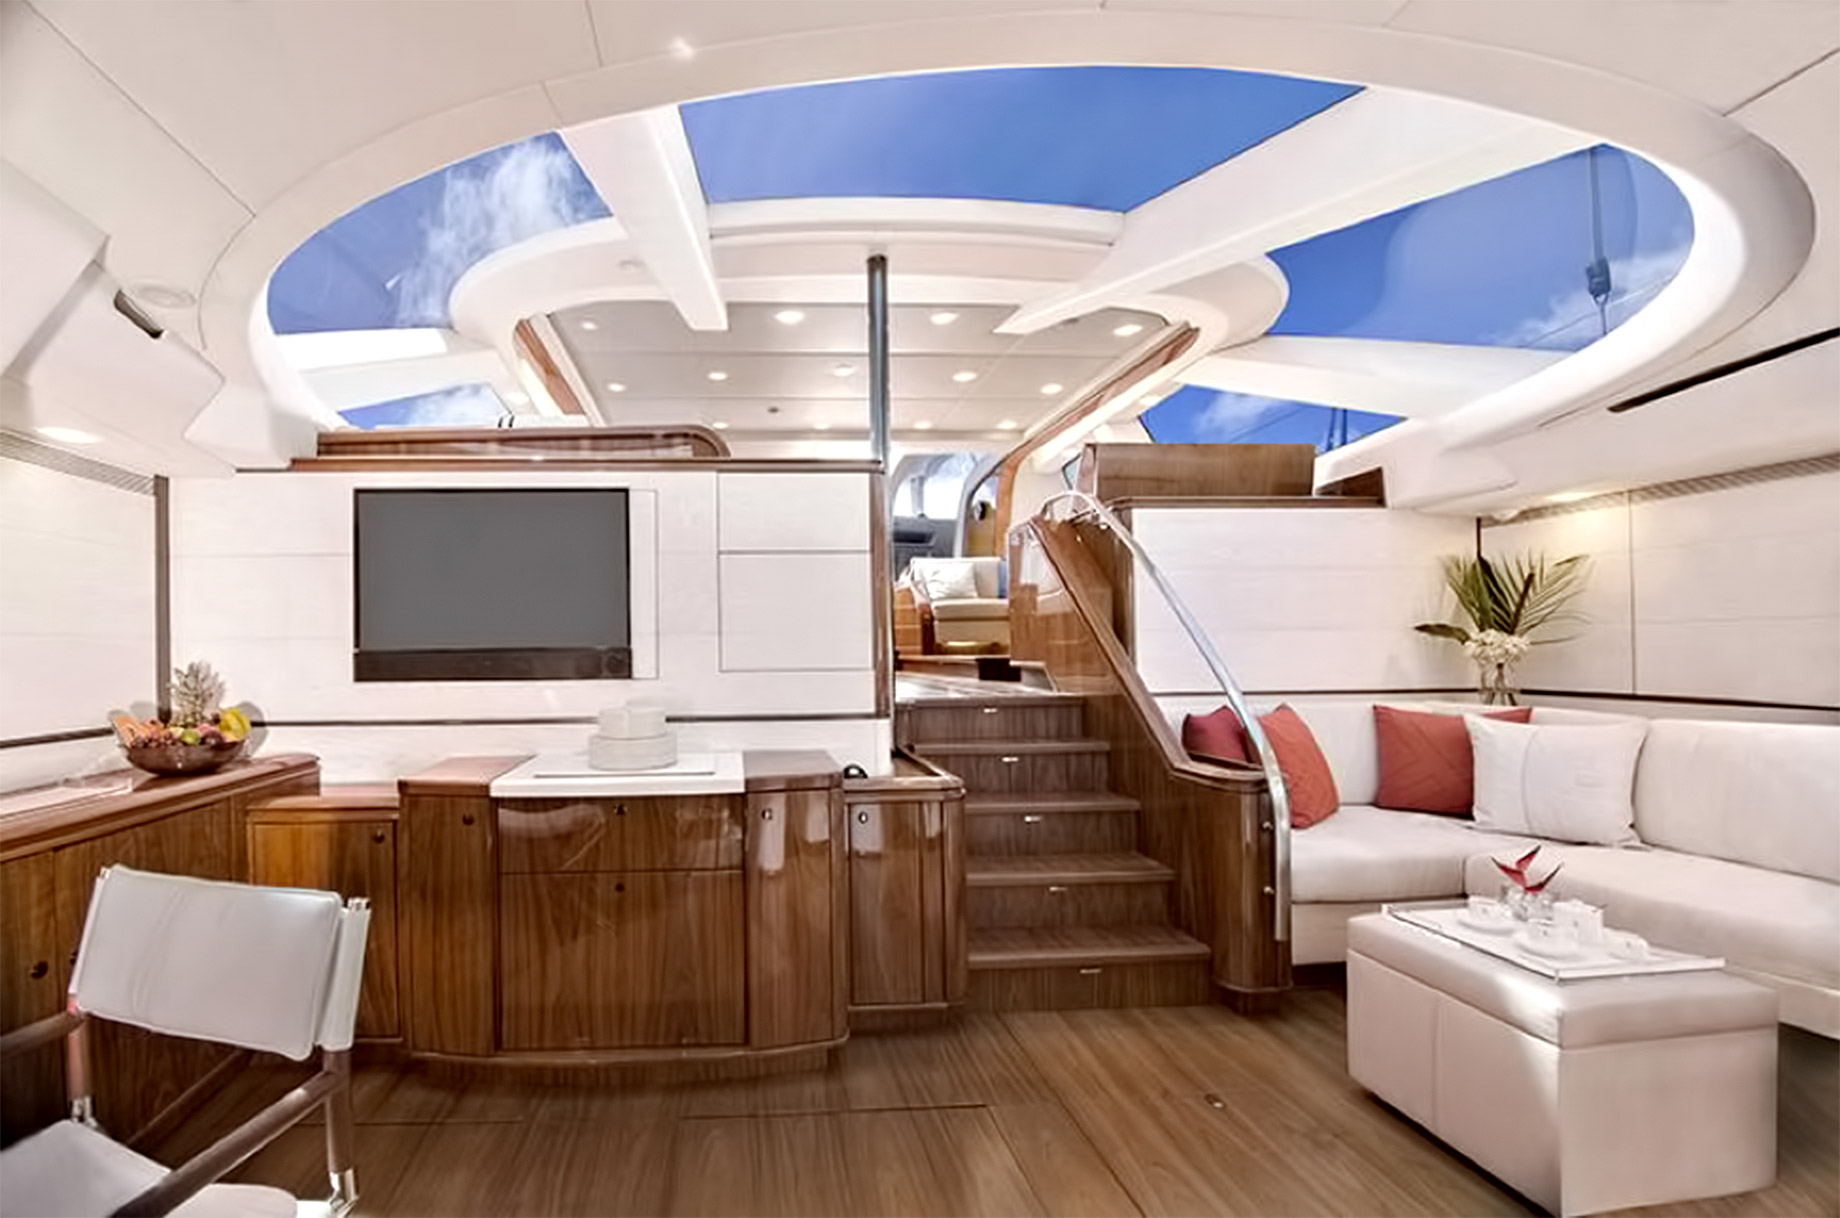 Ultra Generous Accommodation - Oyster 100 Penelope - Step Inside A Luxury British Sailing Yacht